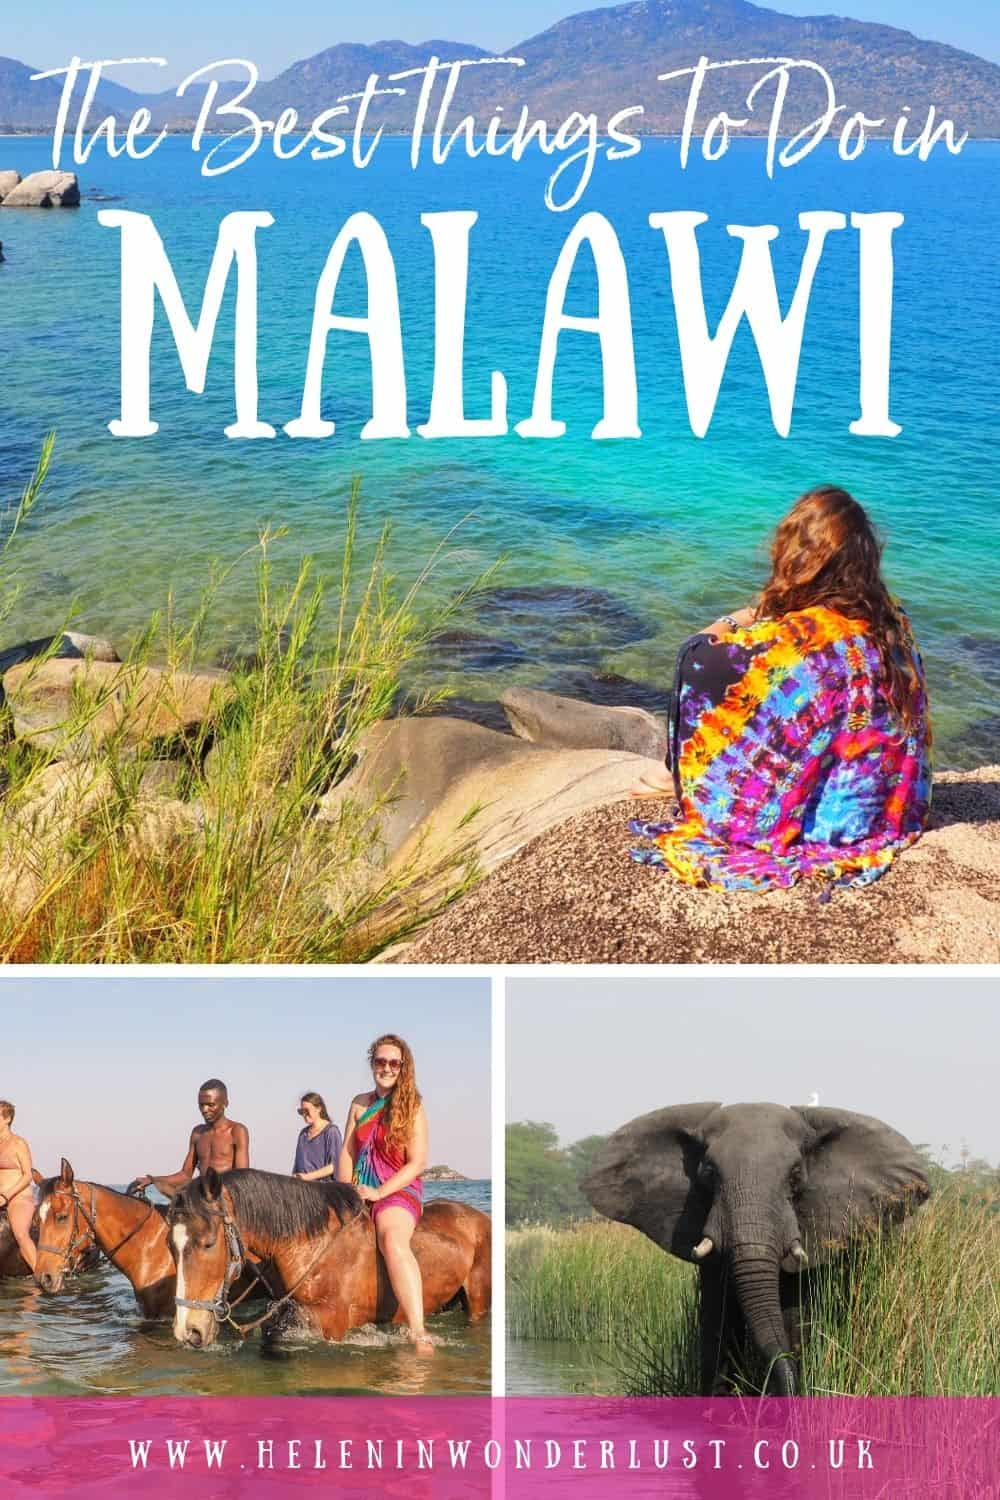 The Best Things To Do in Malawi